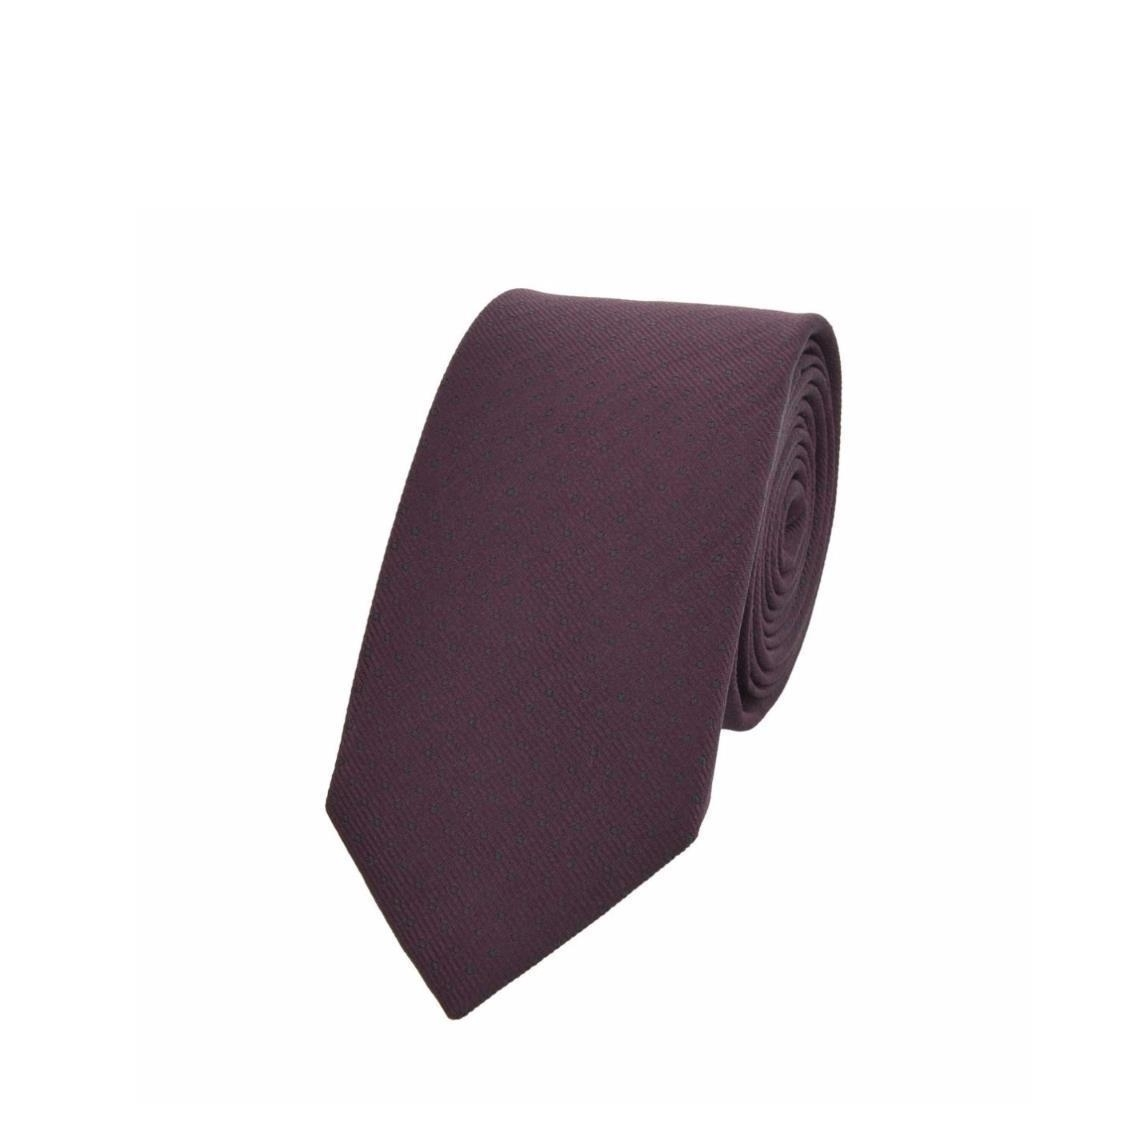 Jacquard Silk Tie In Maroon with Polka Dots